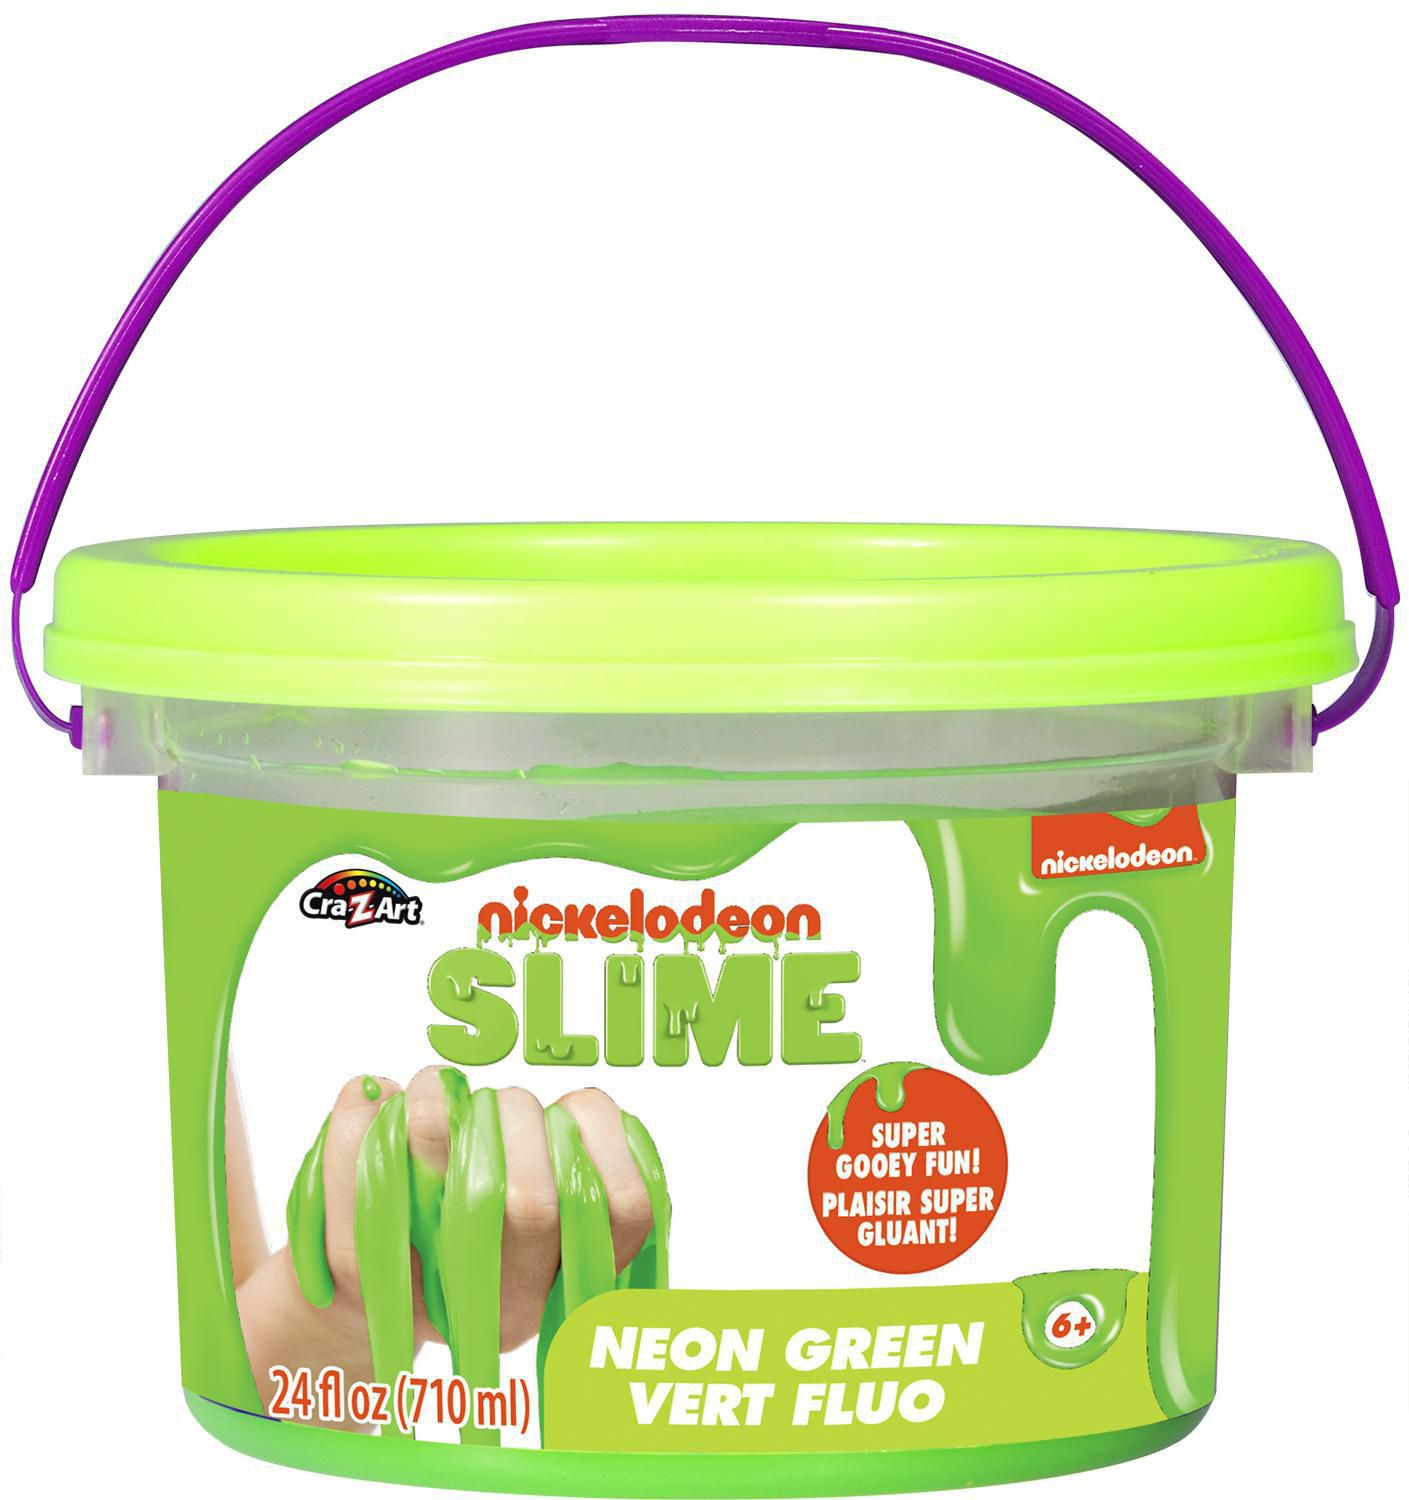 Nickelodeon Neon Green Pre-made Slime